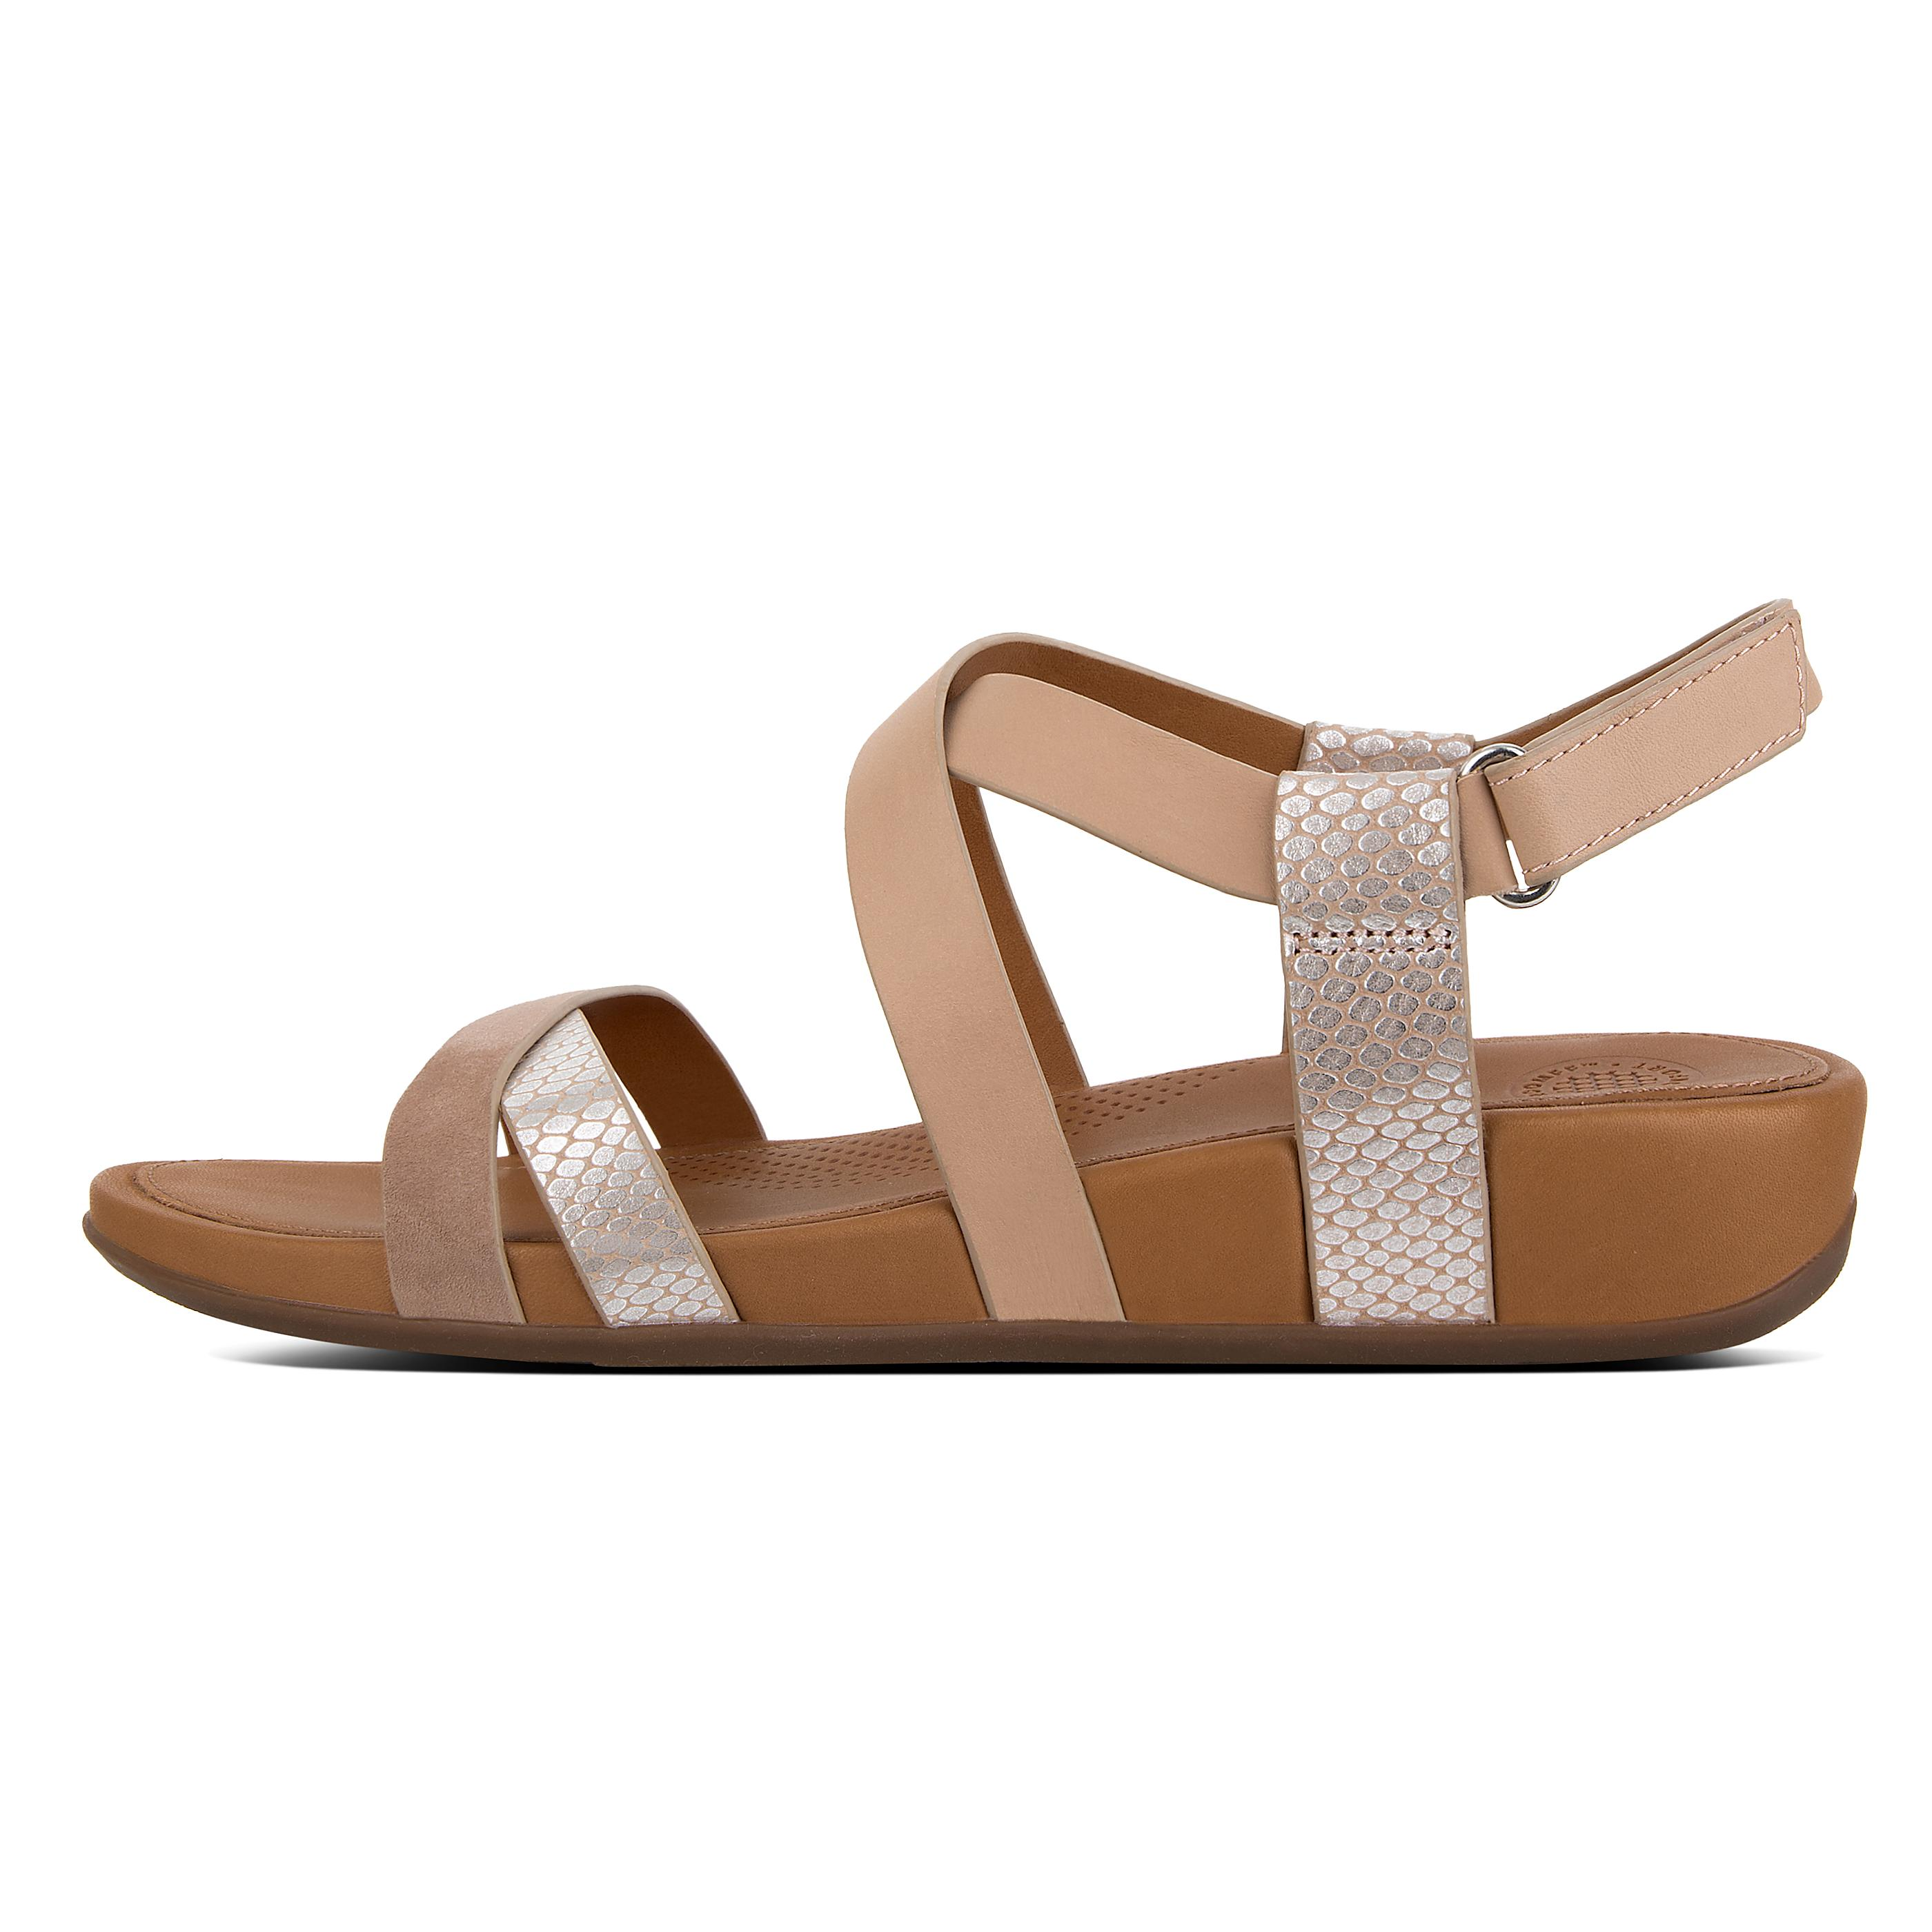 FitFlops Women's Lumy Criss Cross Leather Sandals Shoes